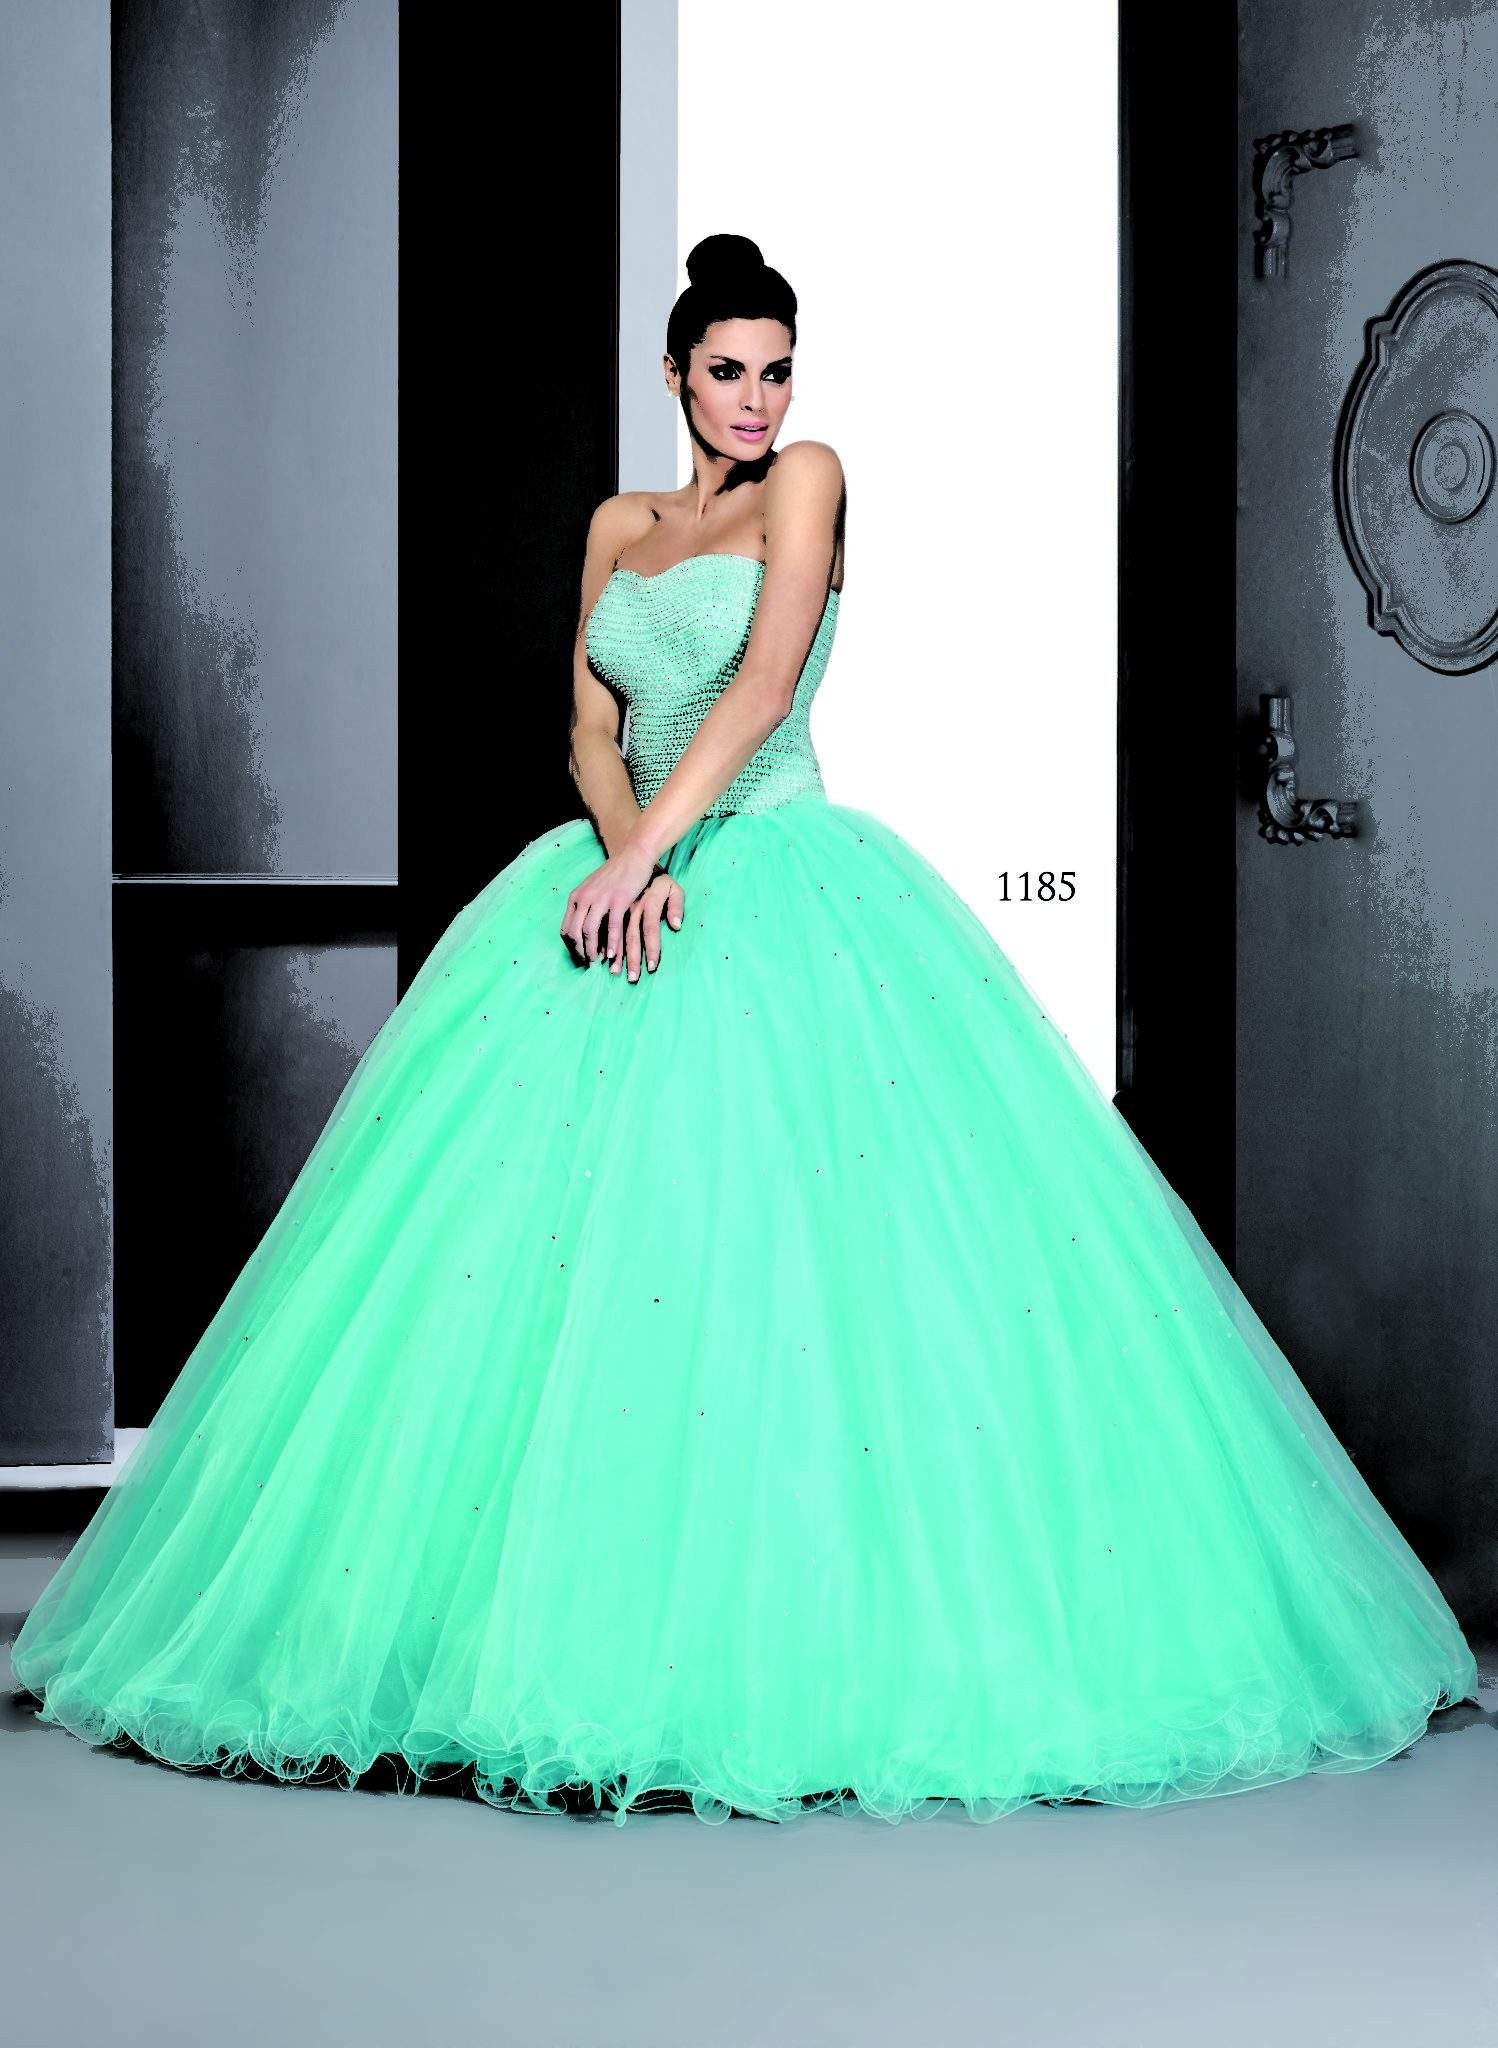 Pastel Colored Ball Gowns Darius Cordell Fashion Ltd